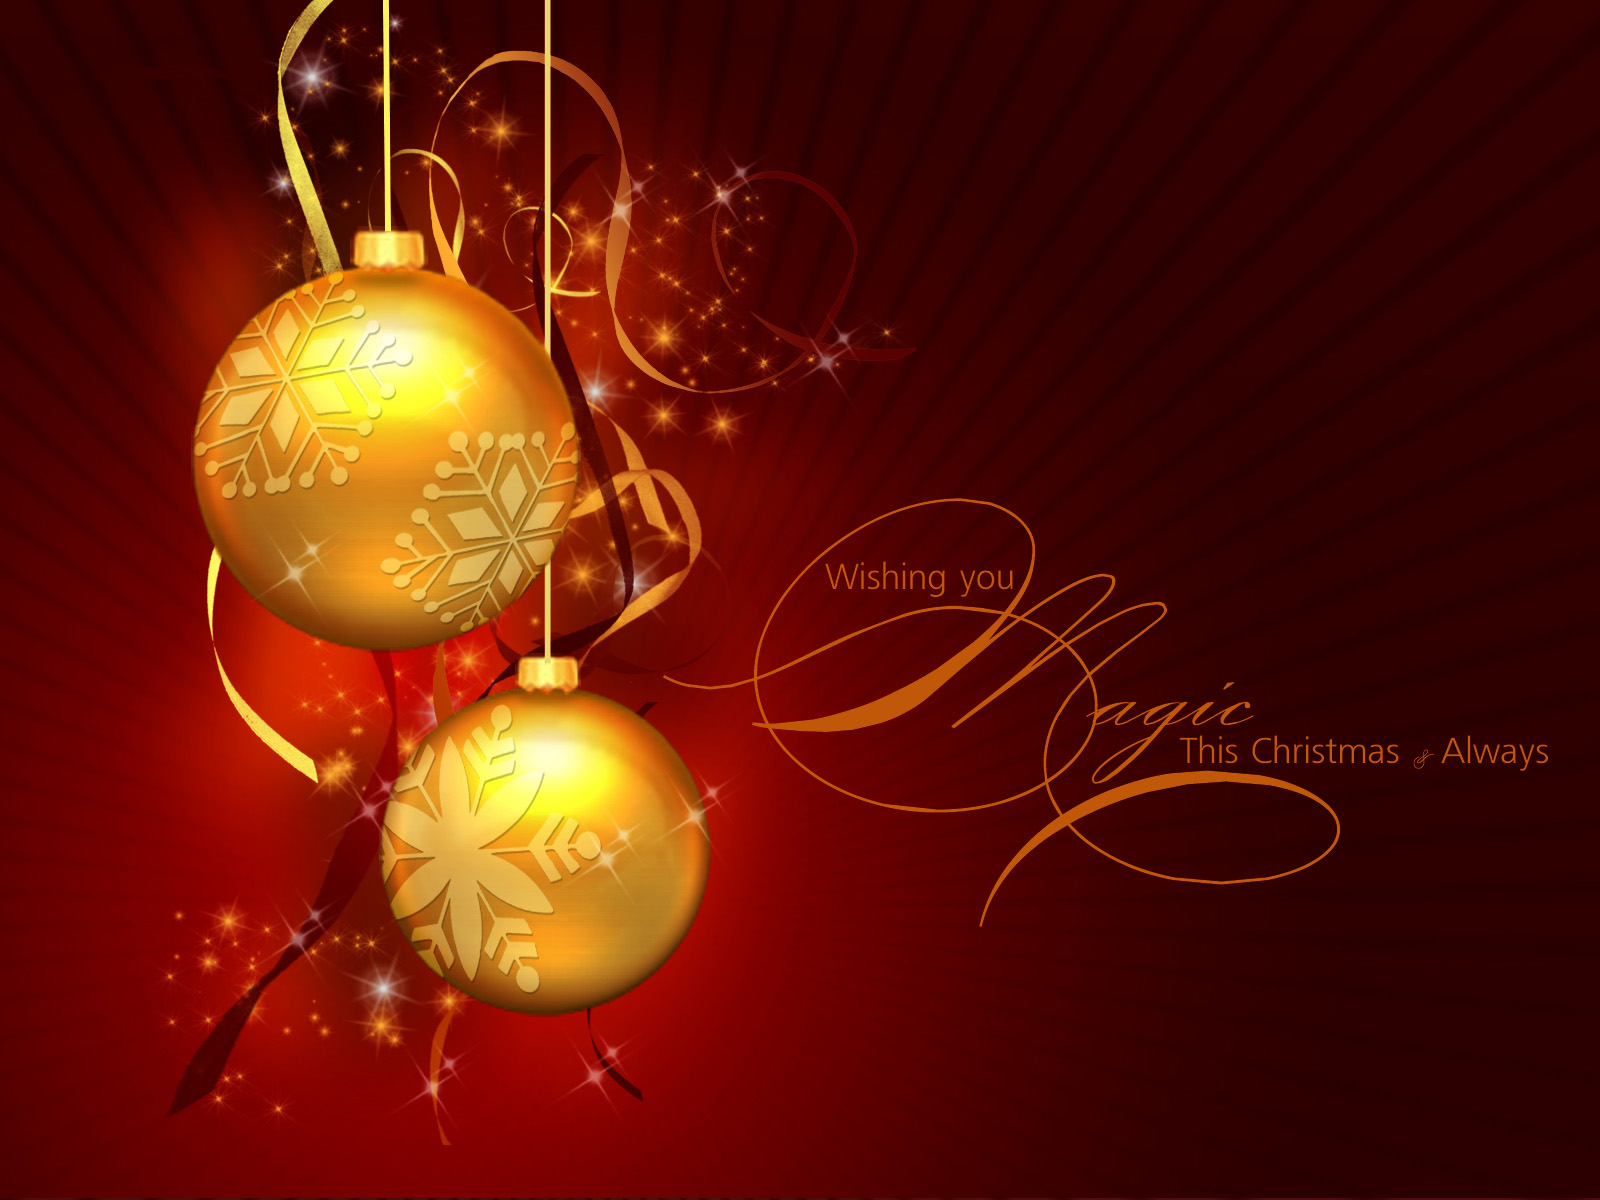 merry christmas wallpapers red 2017 free download | wallpaper.wiki